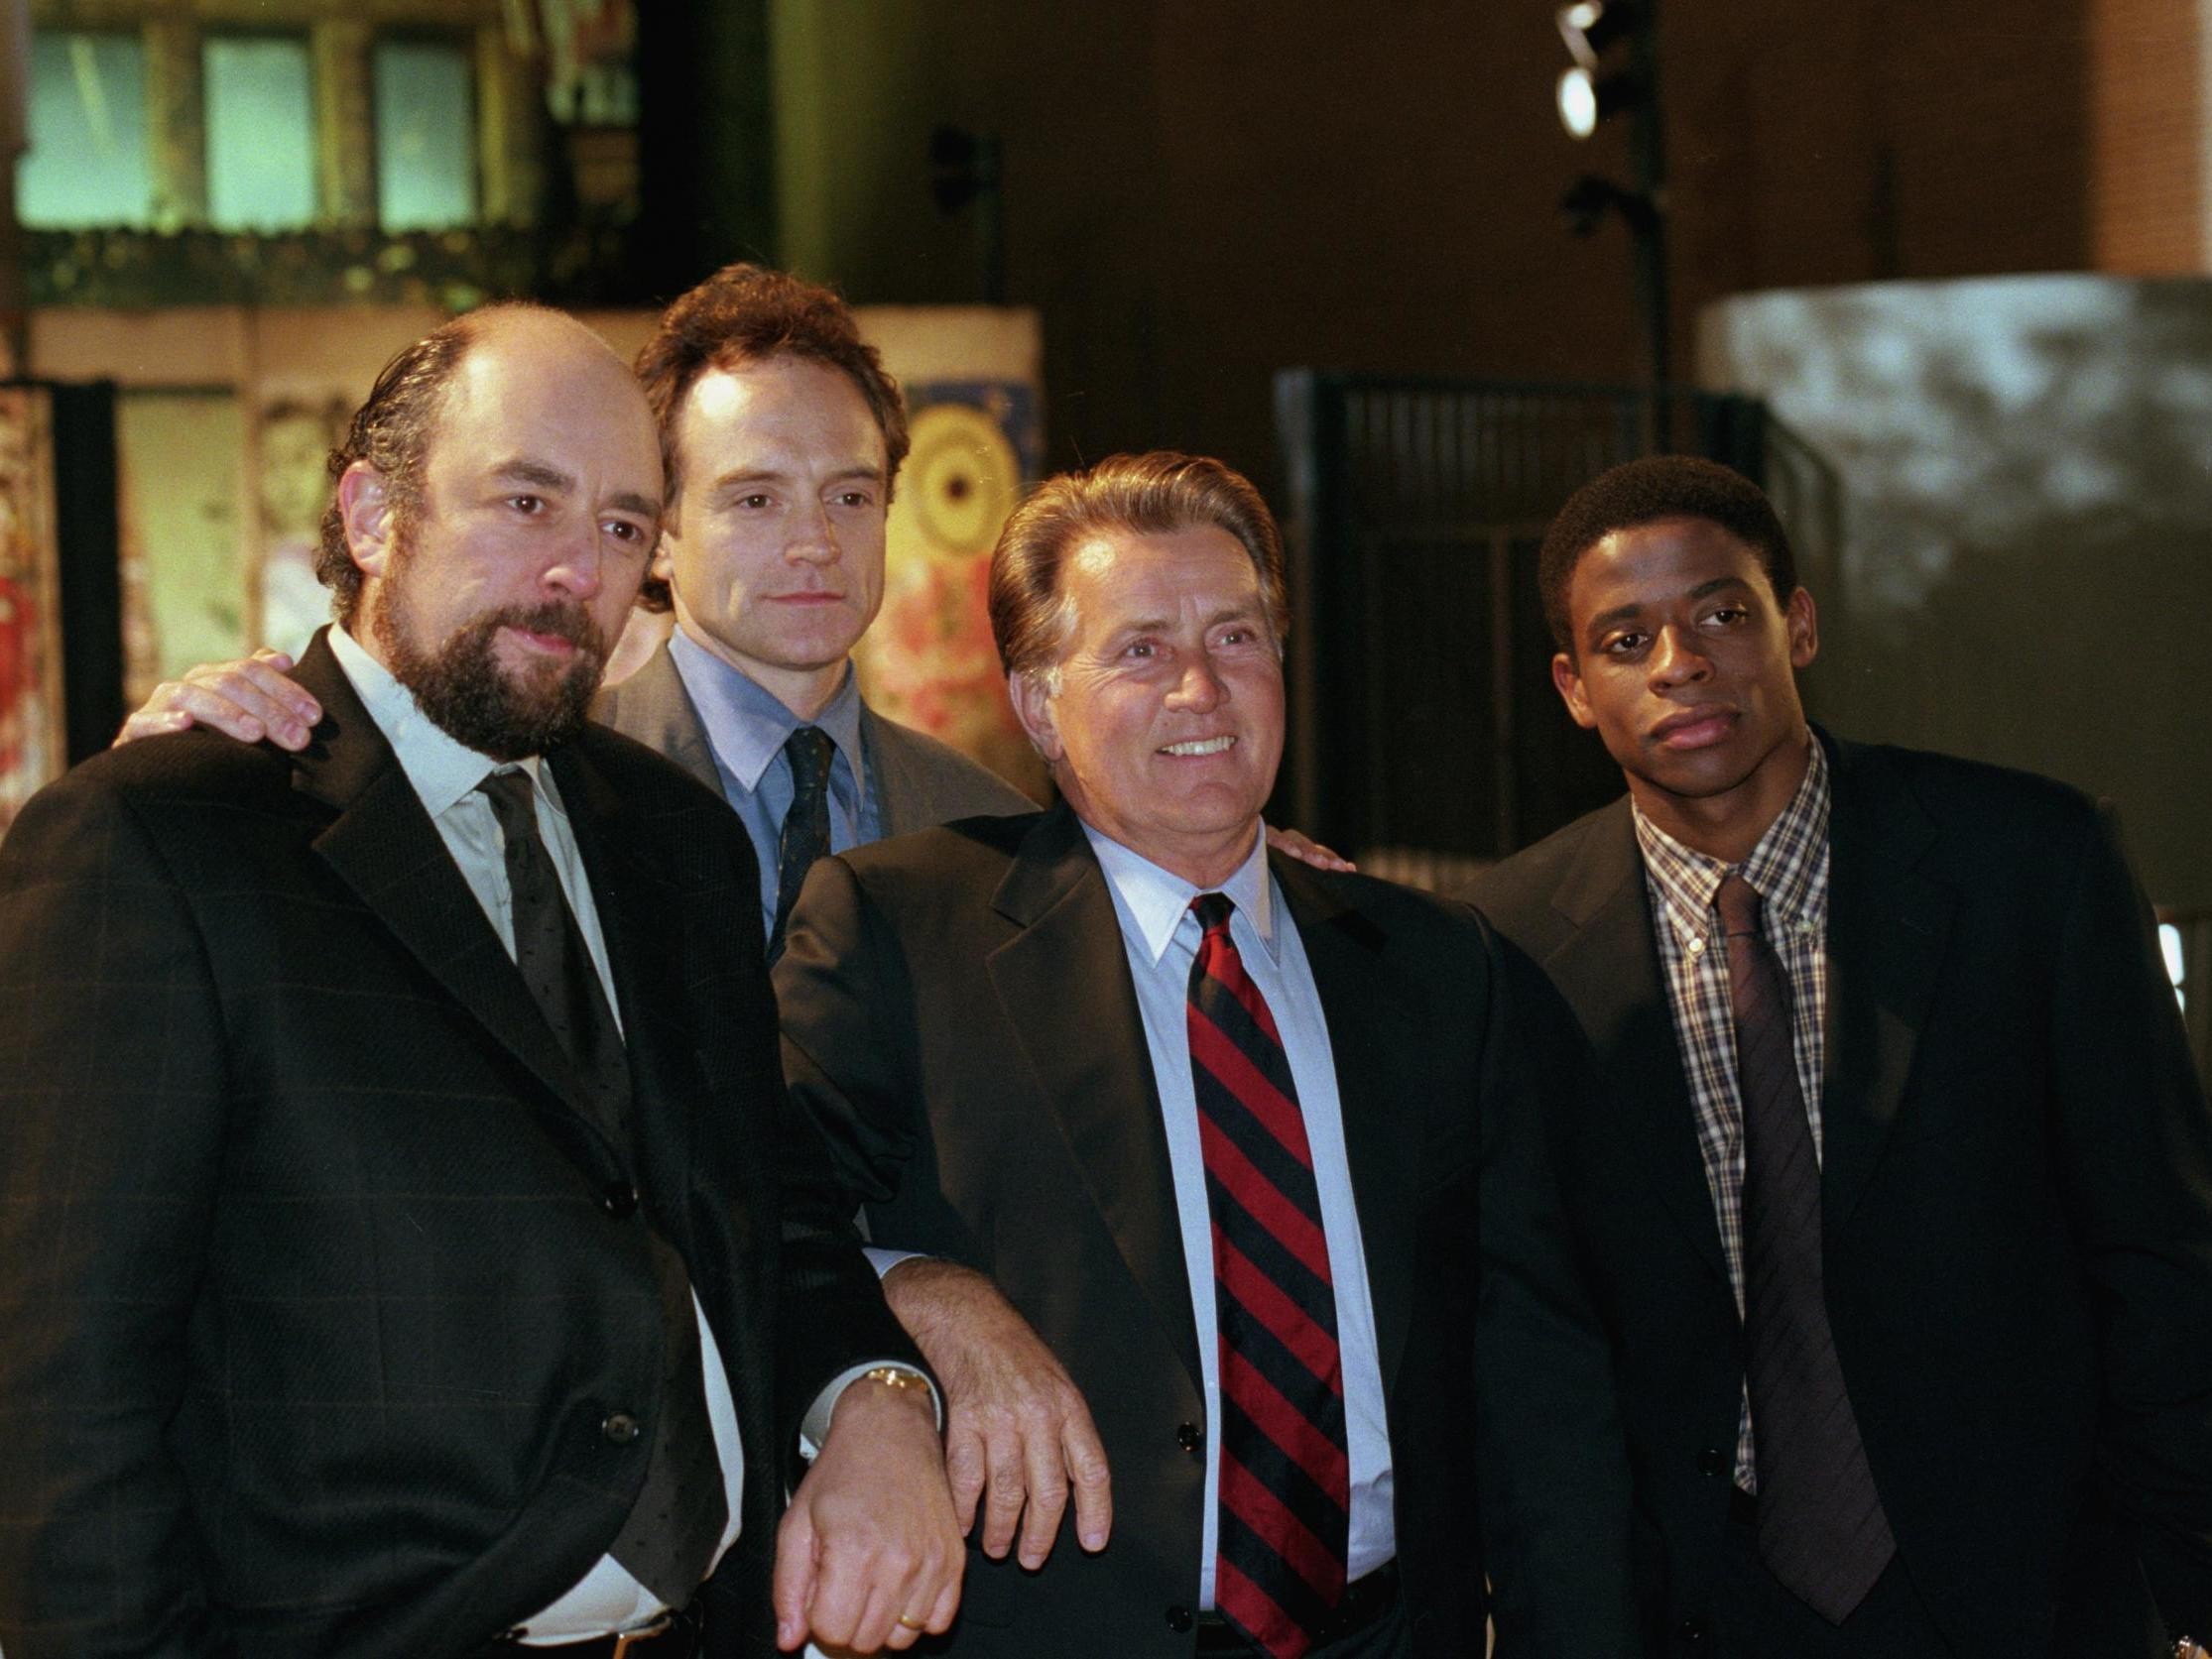 The West Wing star says reunion 'coming soon'